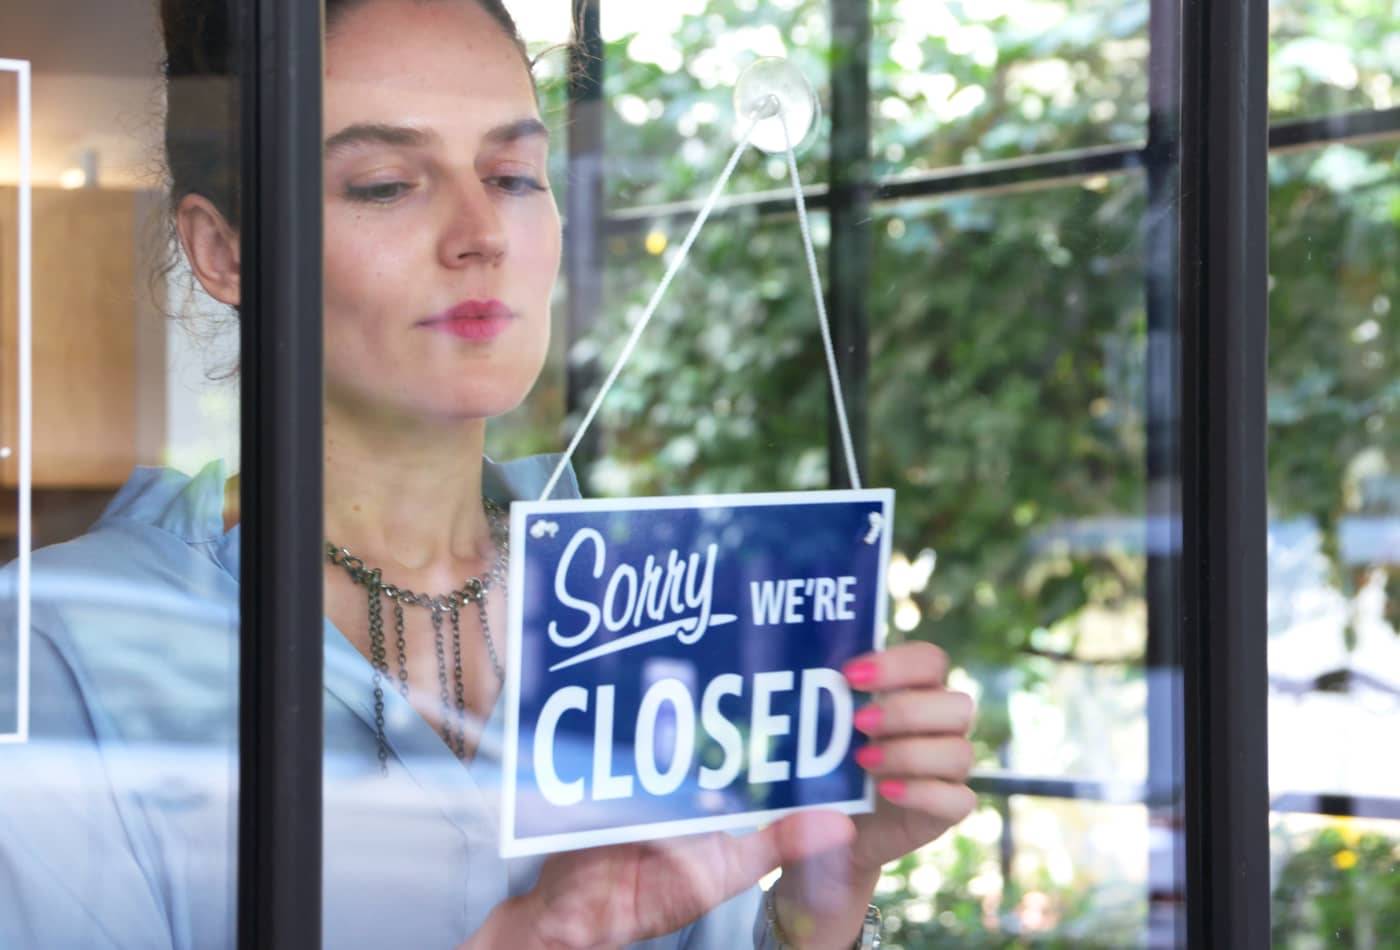 Laid off or unemployed? Here's how to qualify for a credit card when you've just lost your job